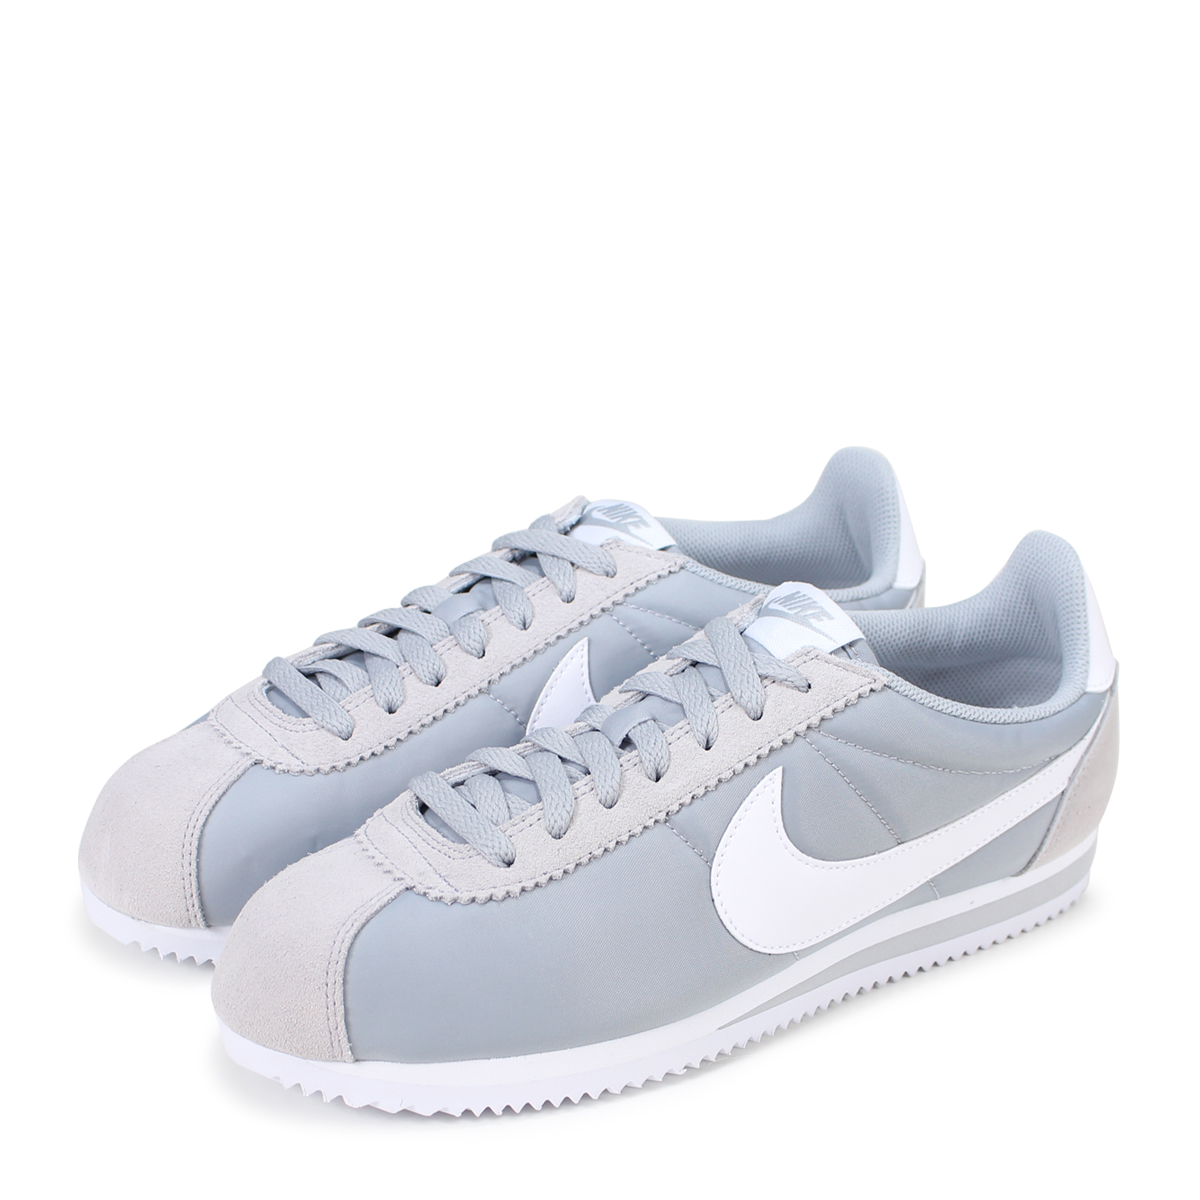 super popular 4f2db a4326 Nike NIKE classic Cortez sneaker CLASSIC CORTEZ NYLON 807472-010 Wolf grey  mens womens shoes grey